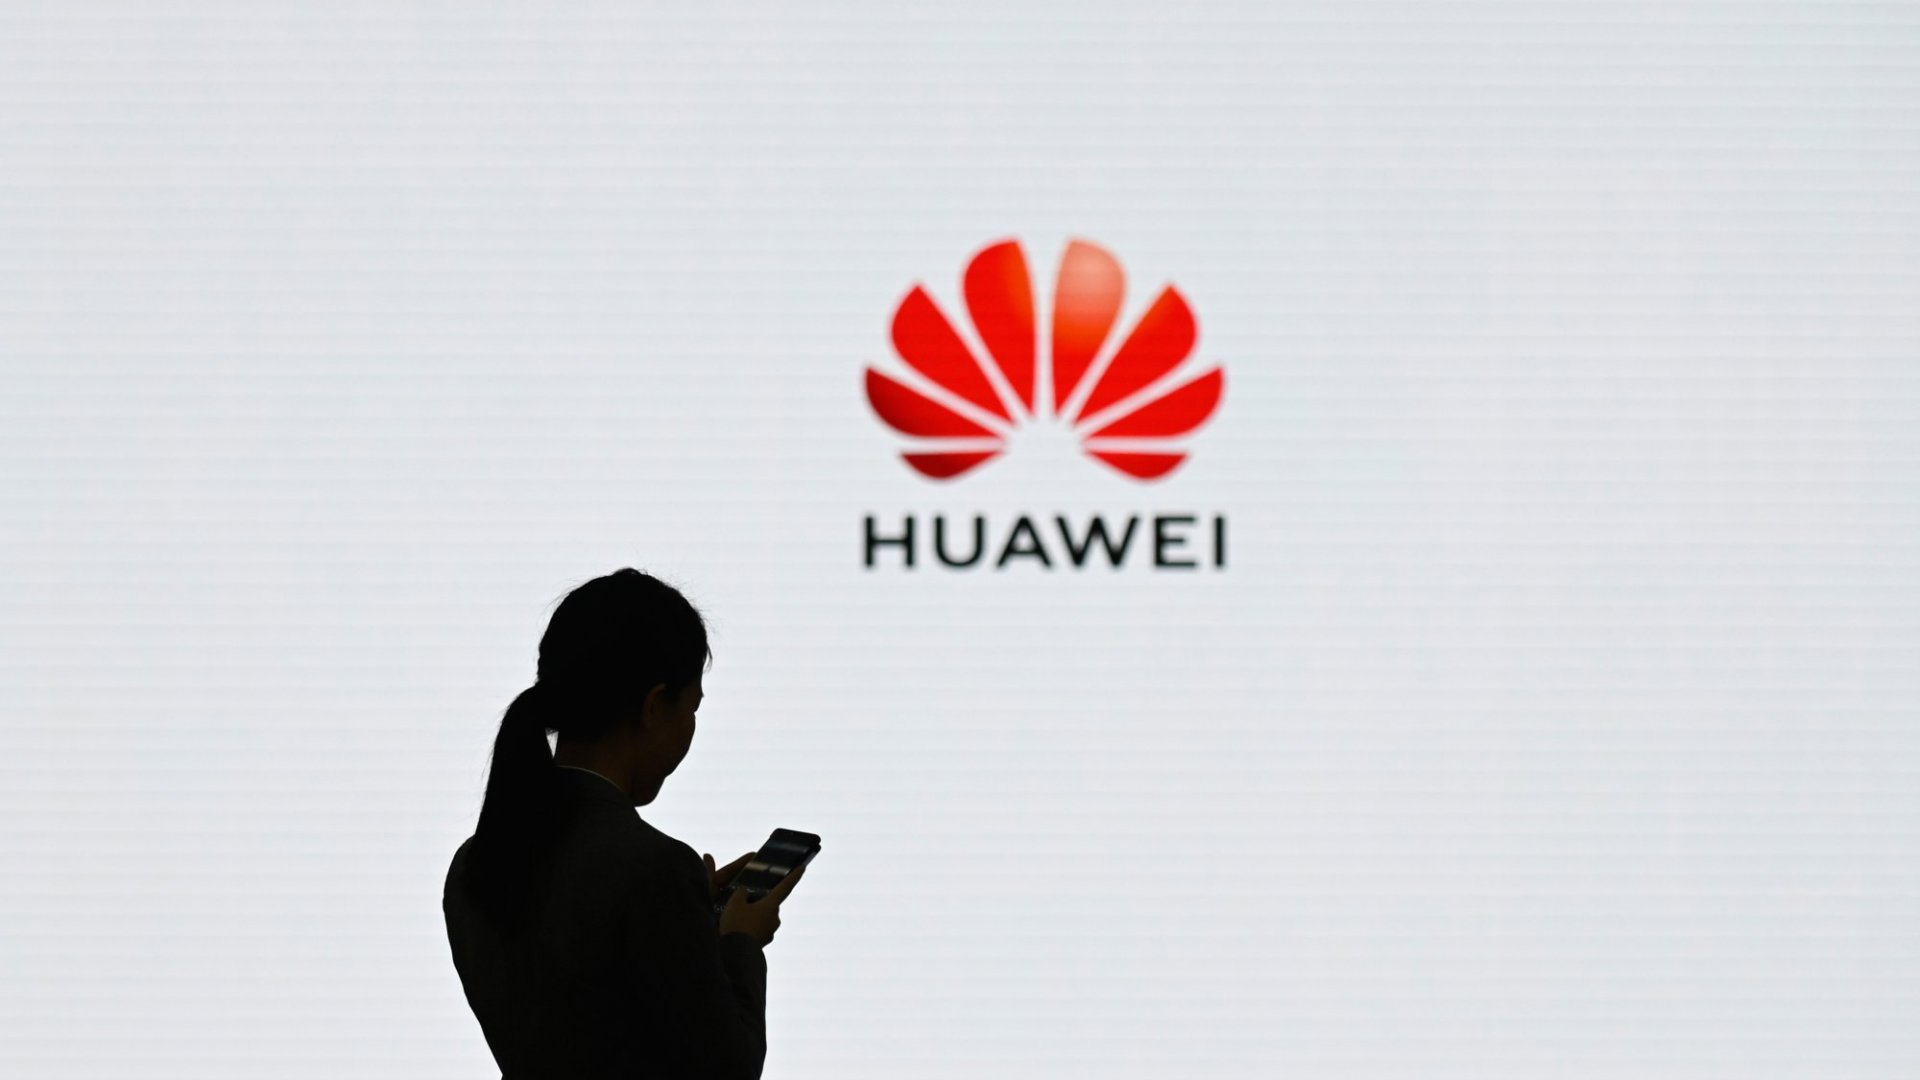 5 Things You Should Know About the U.S. Government's Restrictions on Chinese Tech Giant Huawei